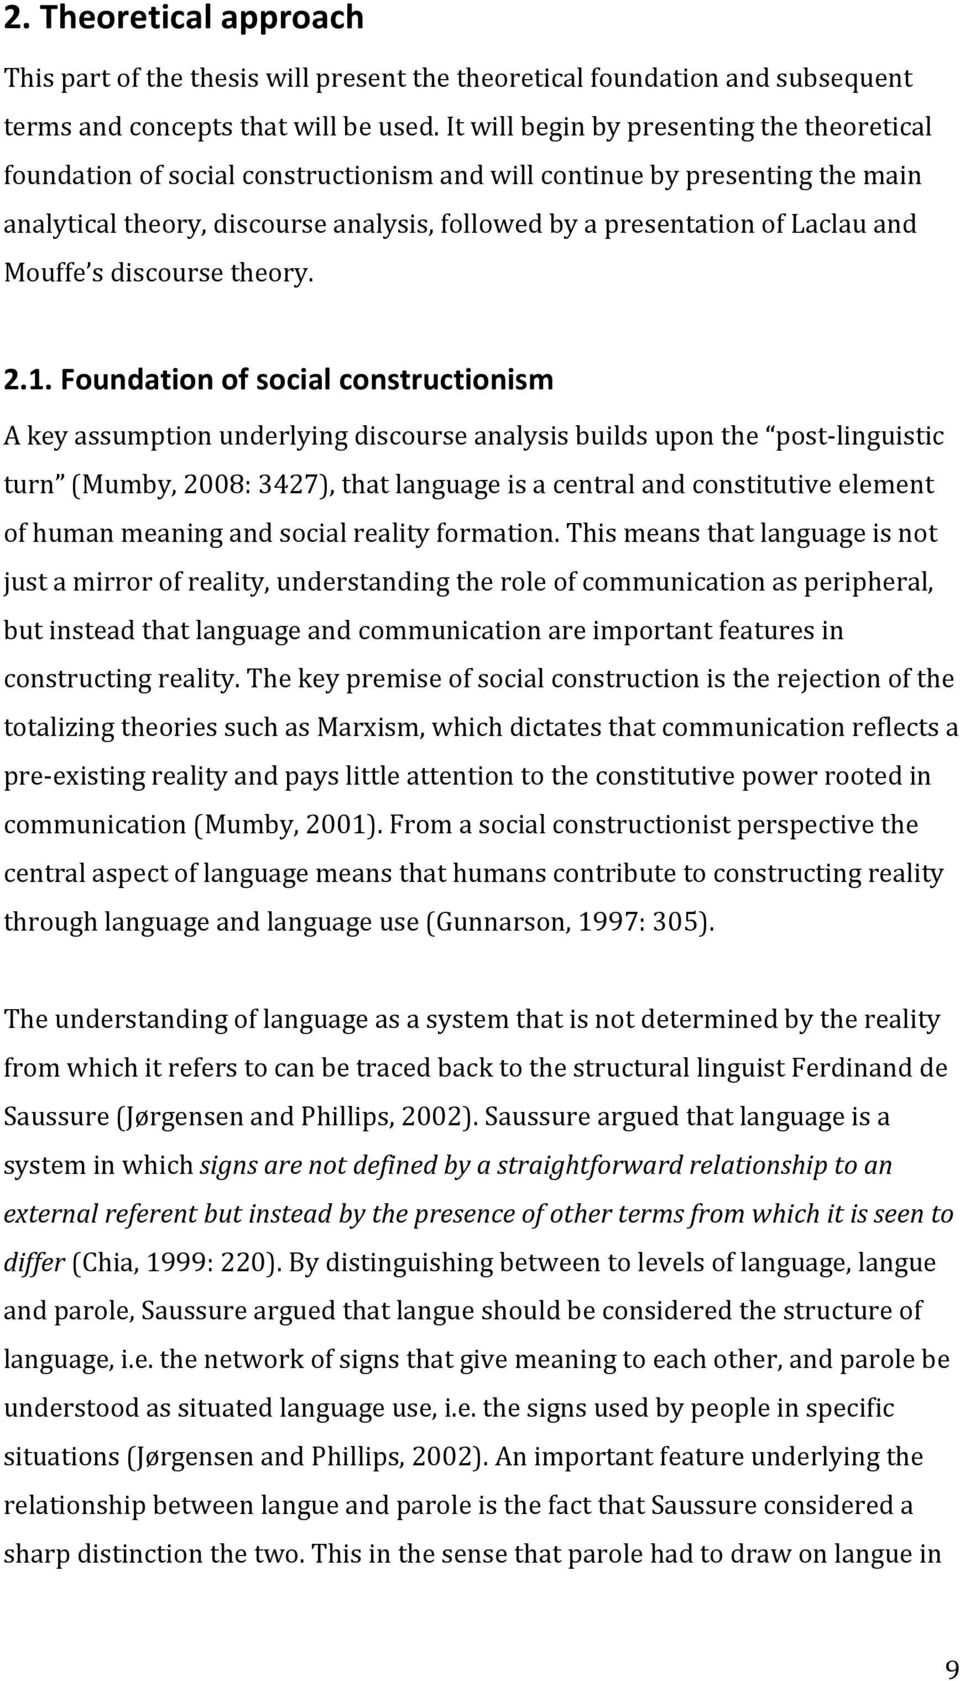 2.1.&Foundation&of&social&constructionism& Akeyassumptionunderlyingdiscourseanalysisbuildsuponthe postclinguistic turn (Mumby,2008:3427),thatlanguageisacentralandconstitutiveelement